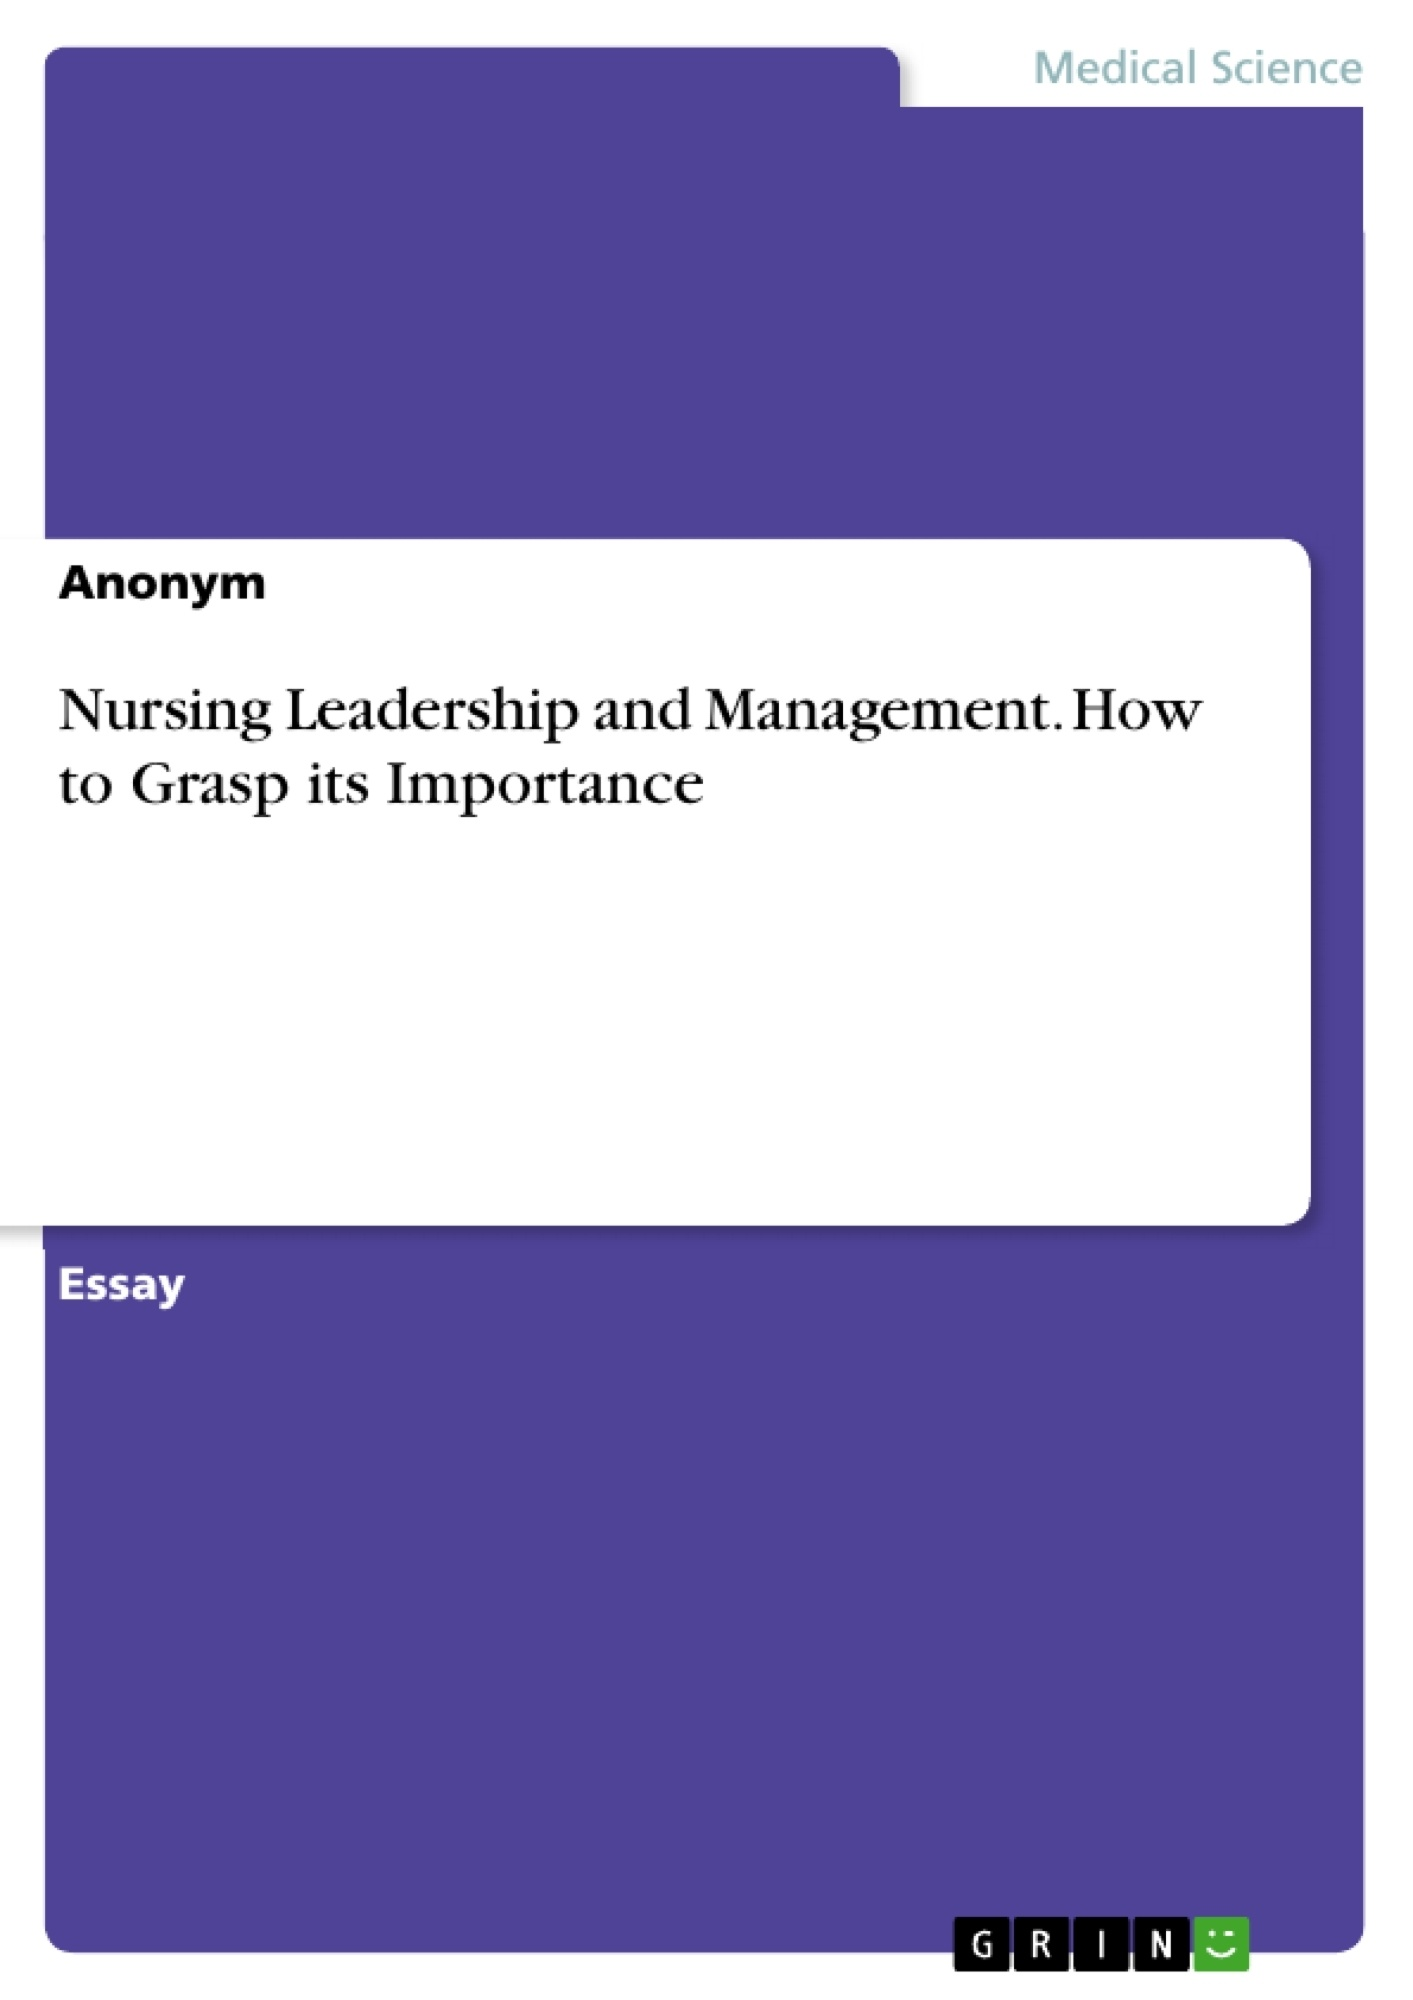 Title: Nursing Leadership and Management. How to Grasp its Importance